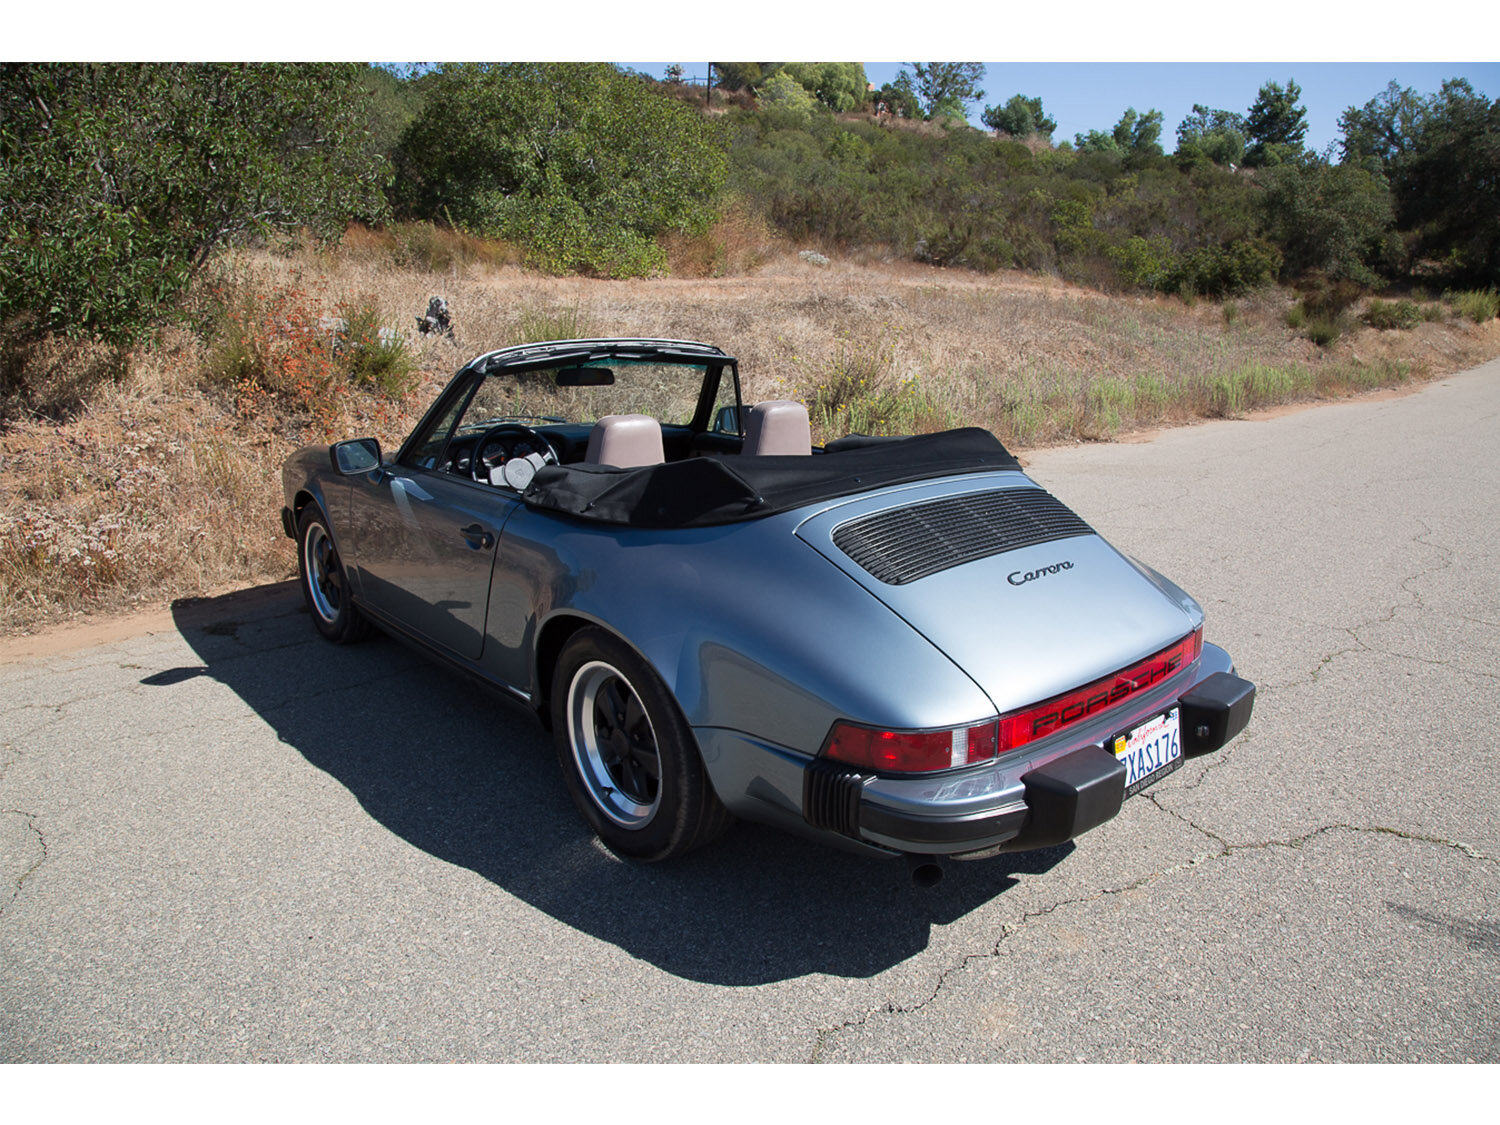 1984-carrera-cabriolet-slate-blue-911-sc-for-sale-makellos-classics_0001s_0000s_0022_1B7A6618.jpg